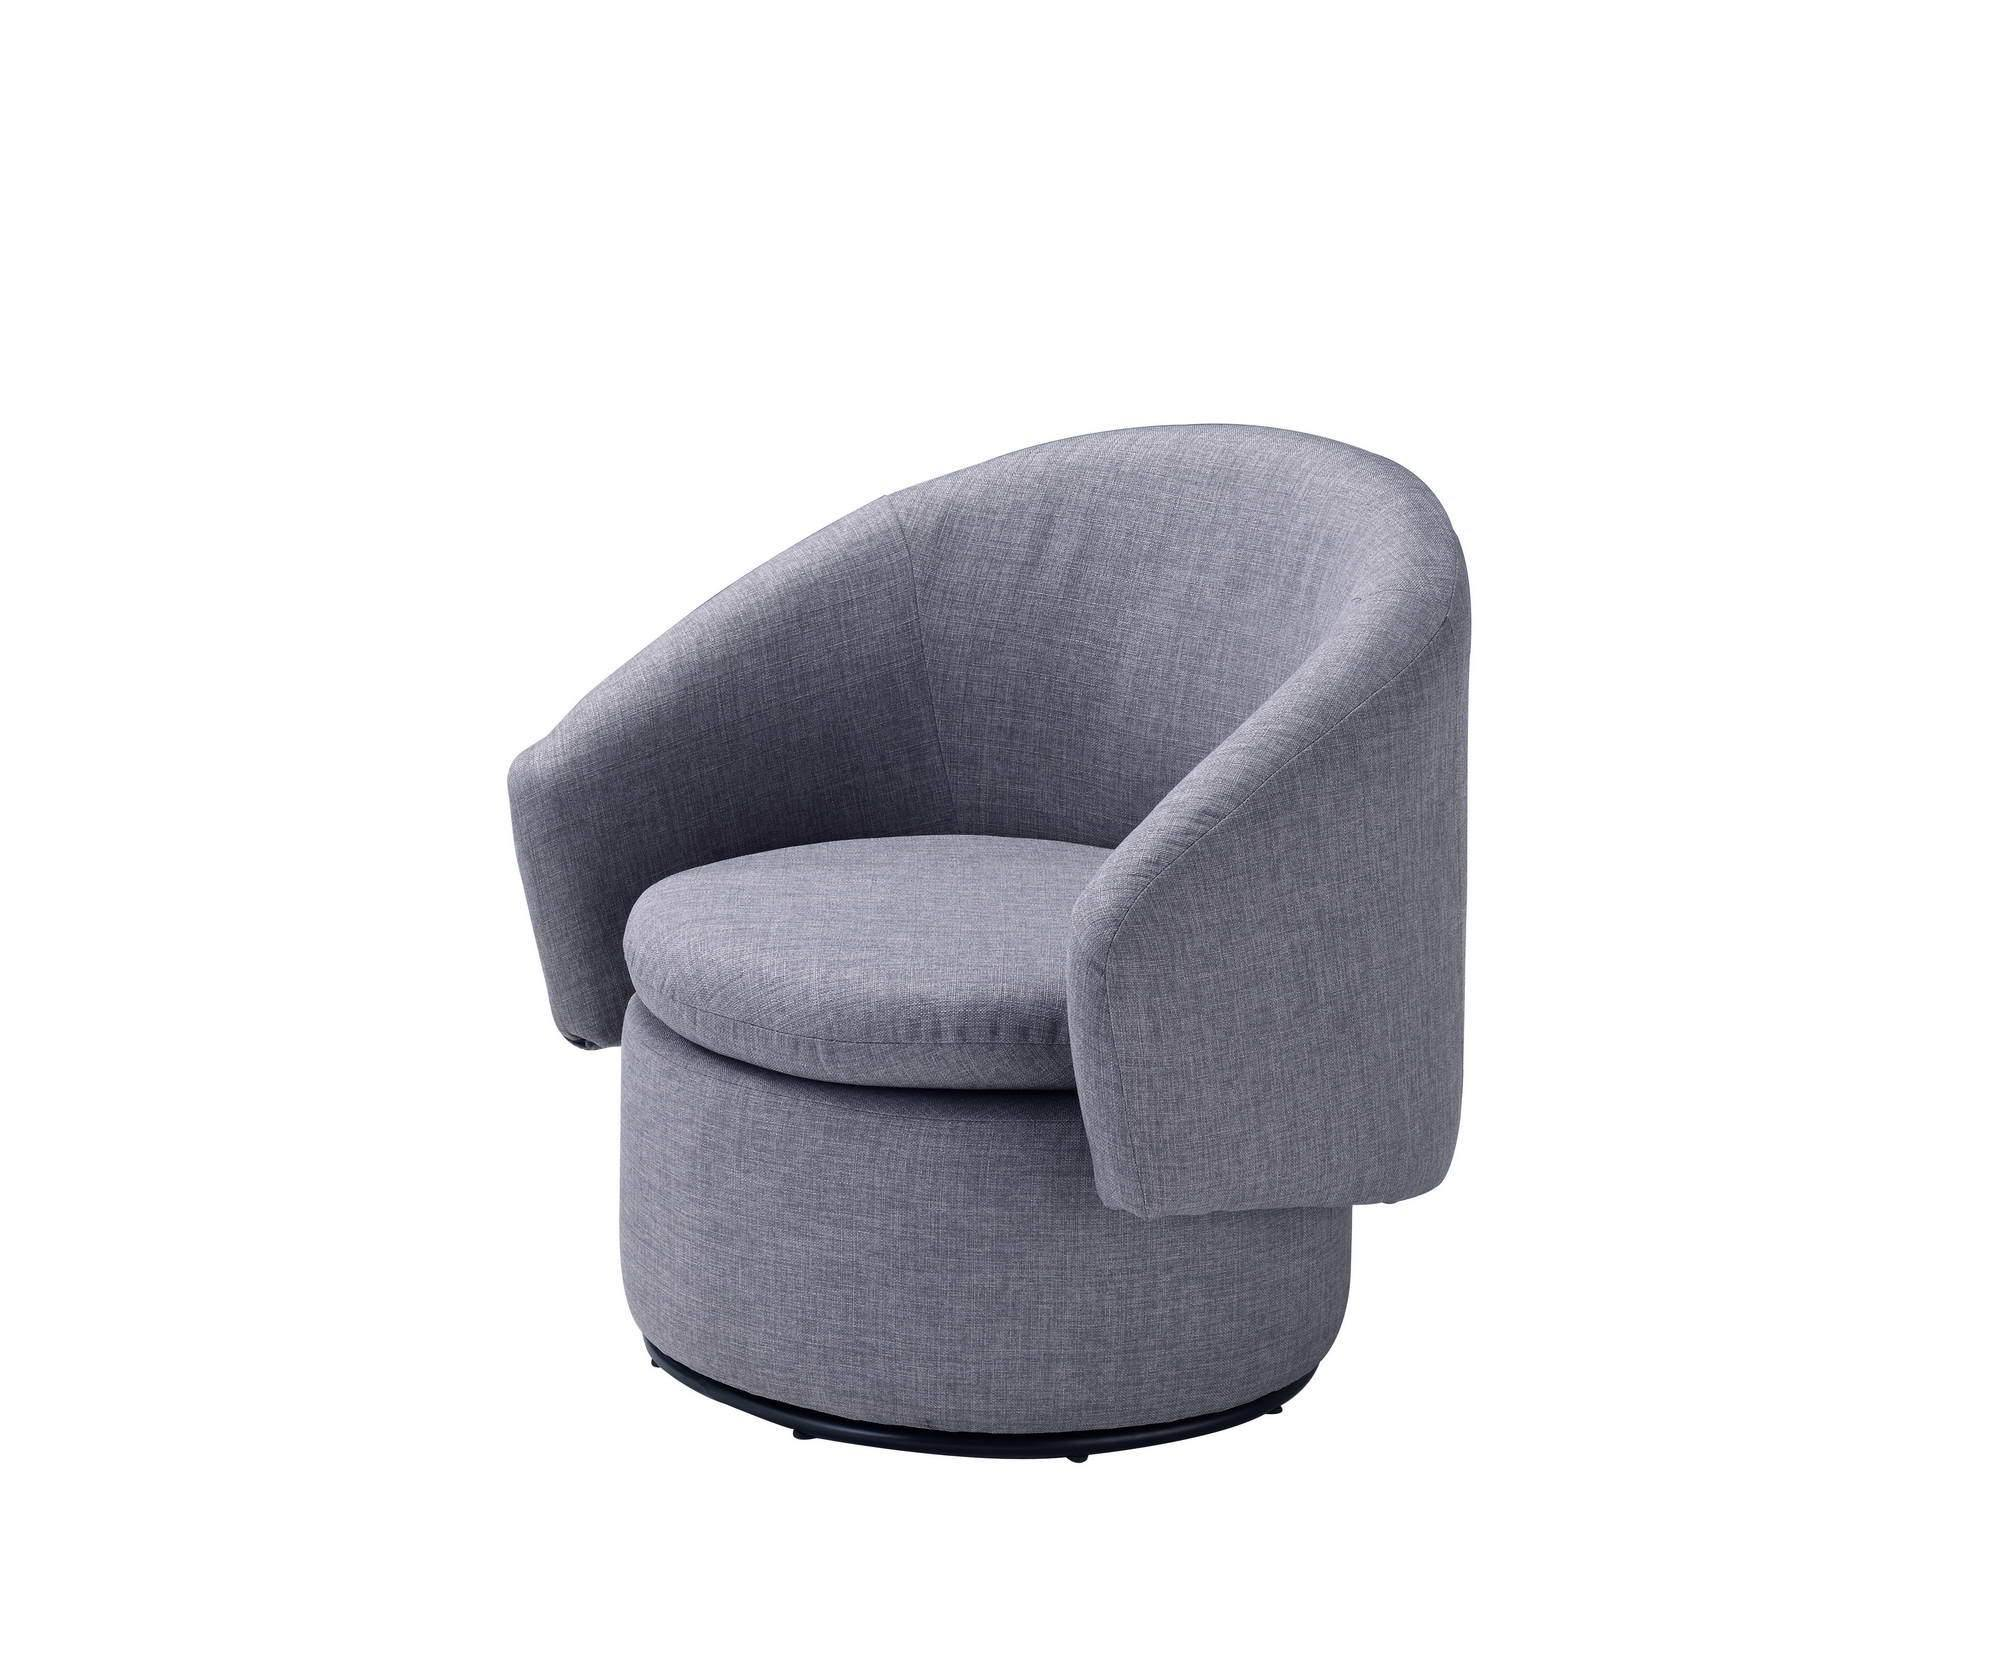 Barrel Accent Swivel Chair in Gray, Contemporary